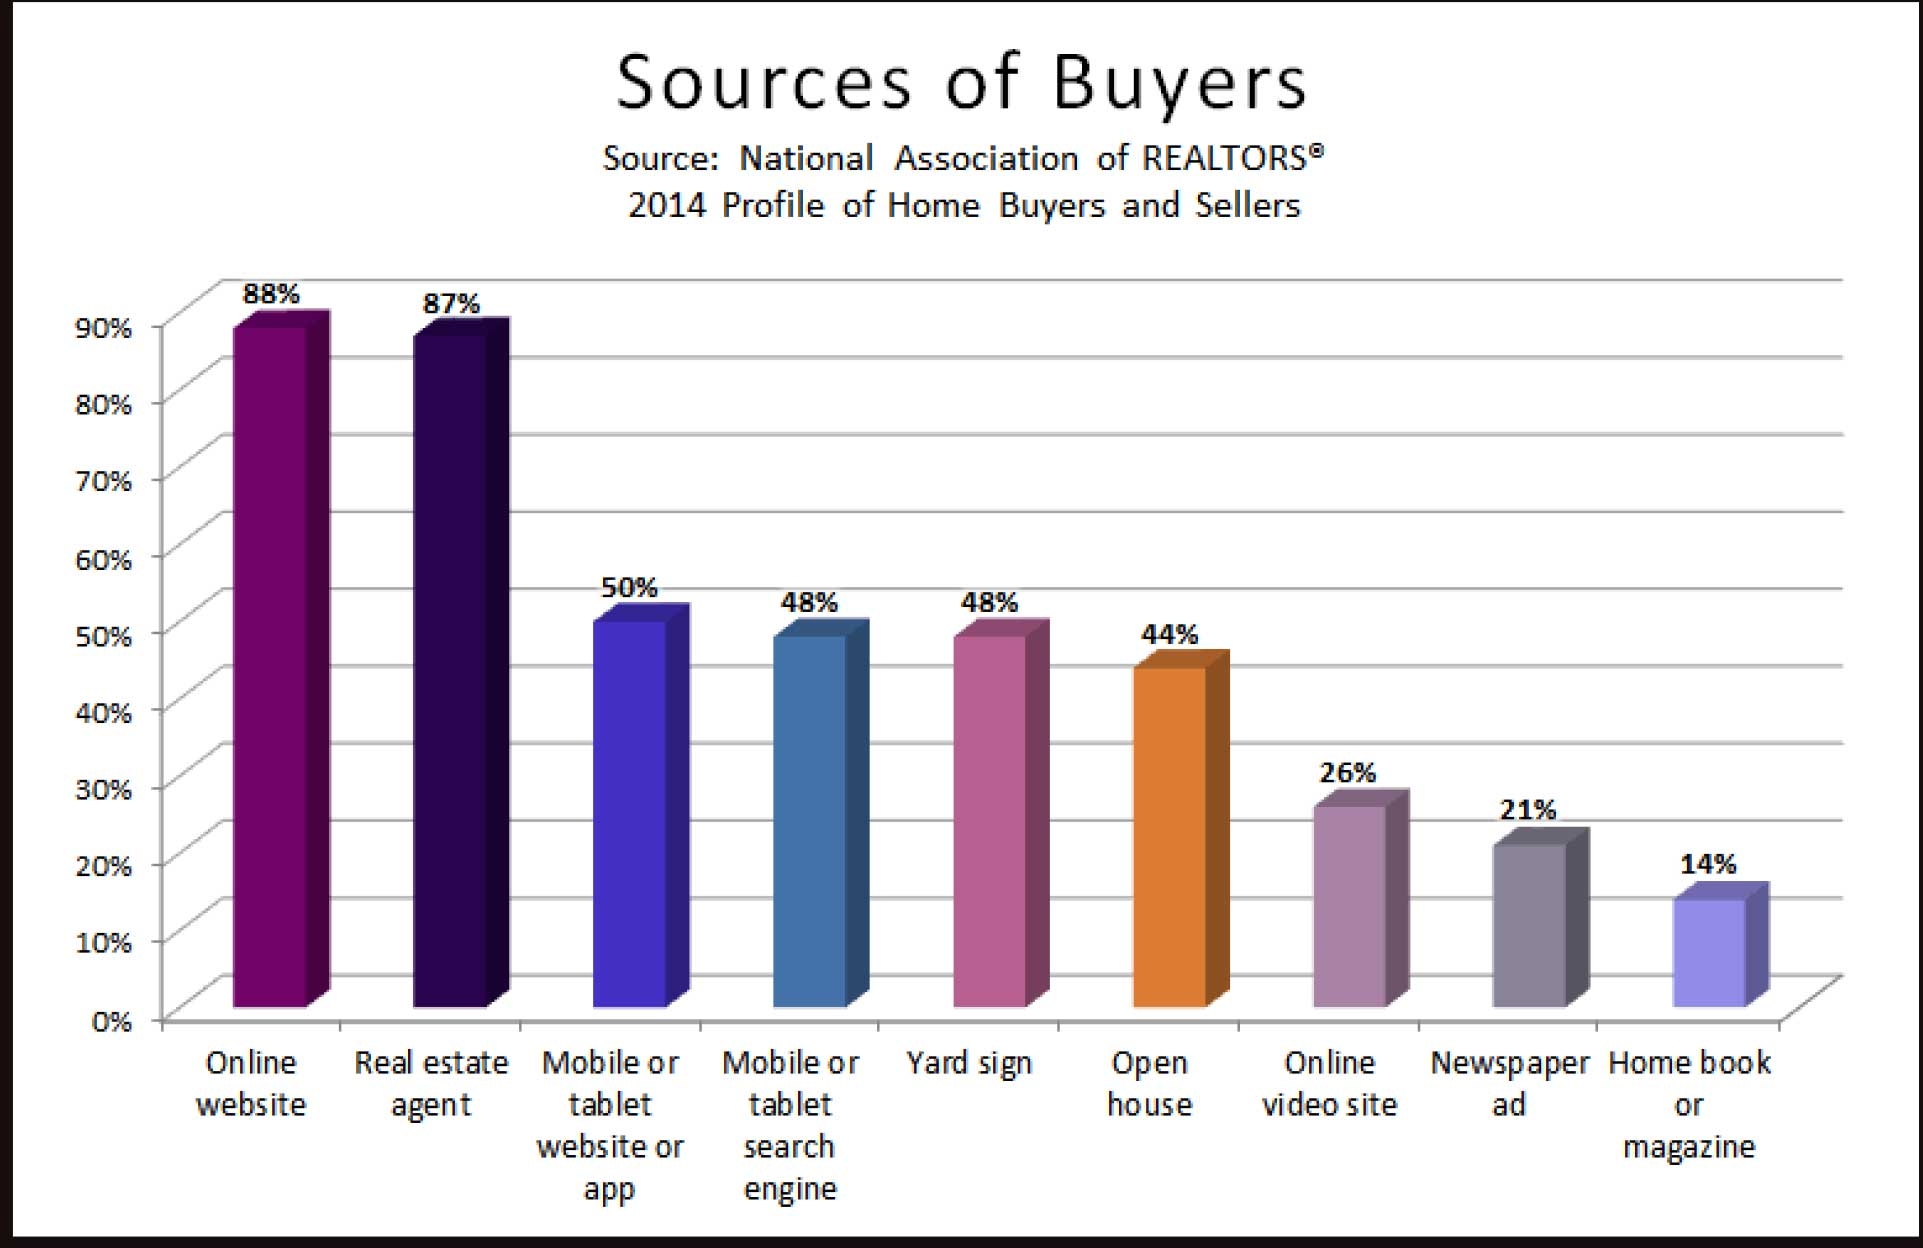 Sources of Buyers